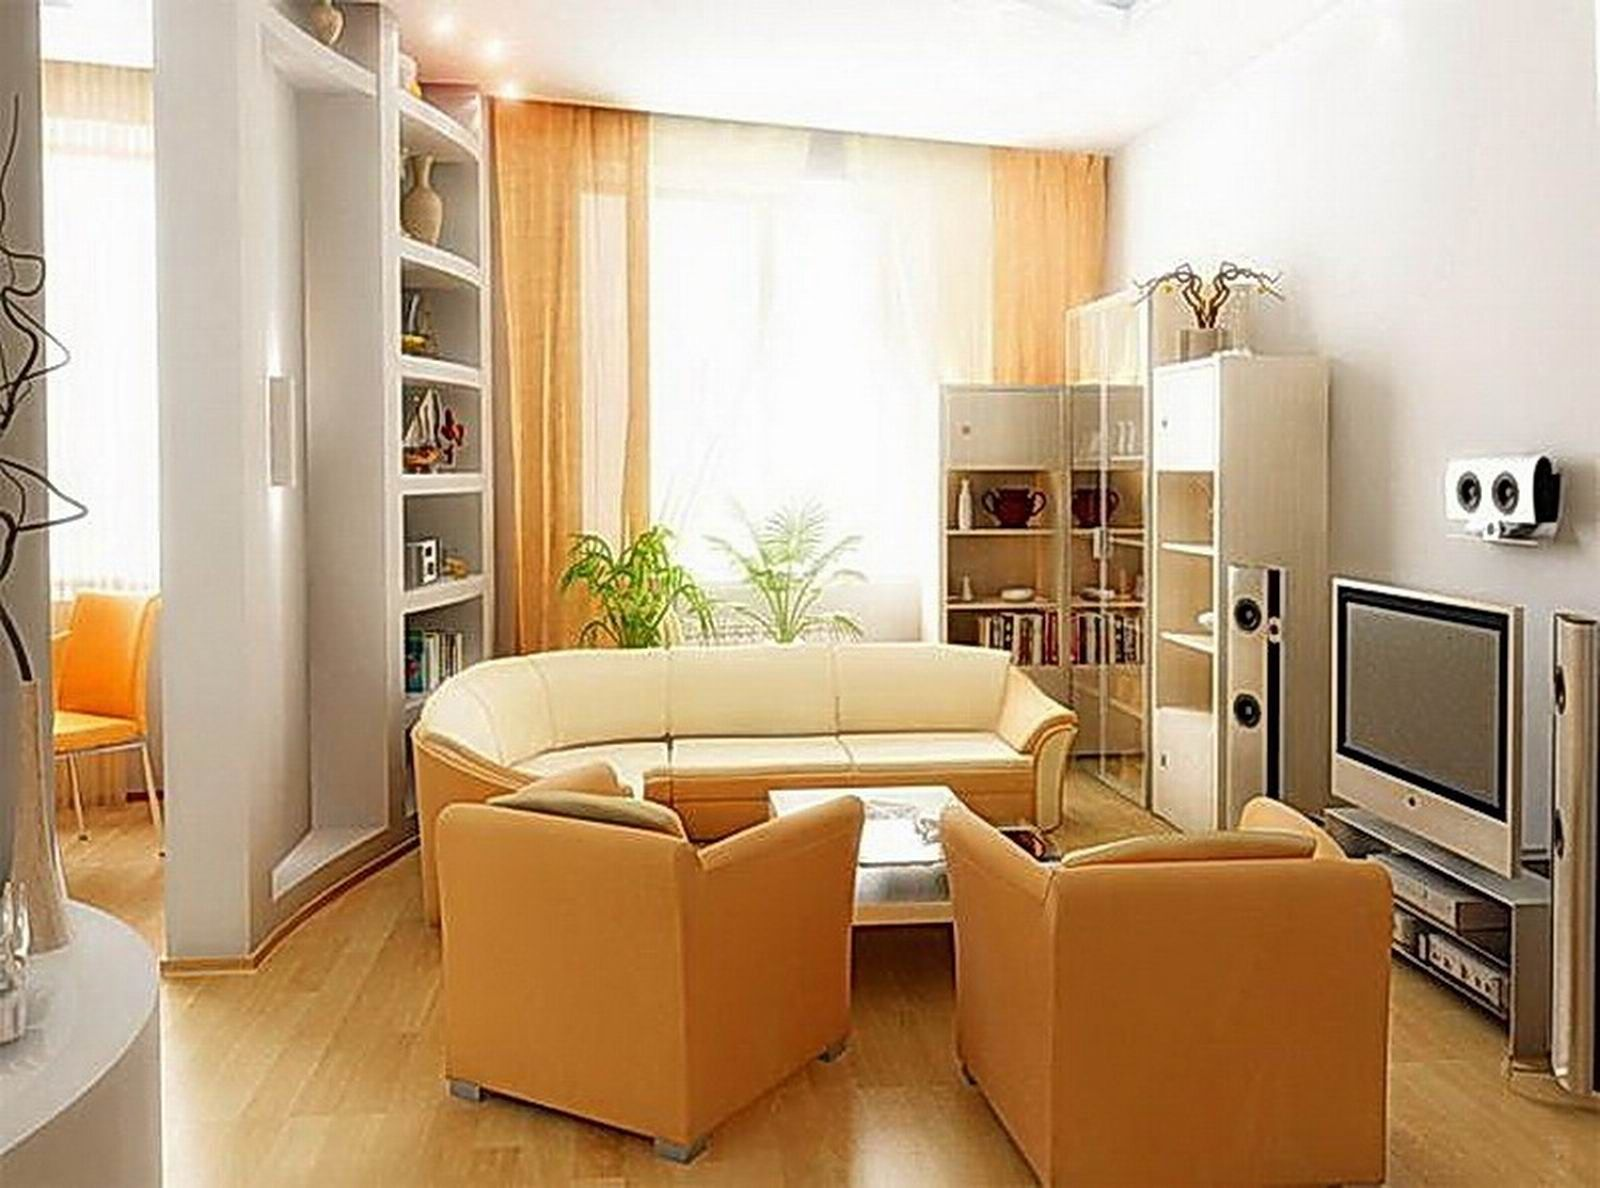 Furniture Arrangement Tv Room Decorating Ideas Small Living Room Layout With Fireplace Ap Small Living Room Design Small Living Room Layout Small Sitting Rooms